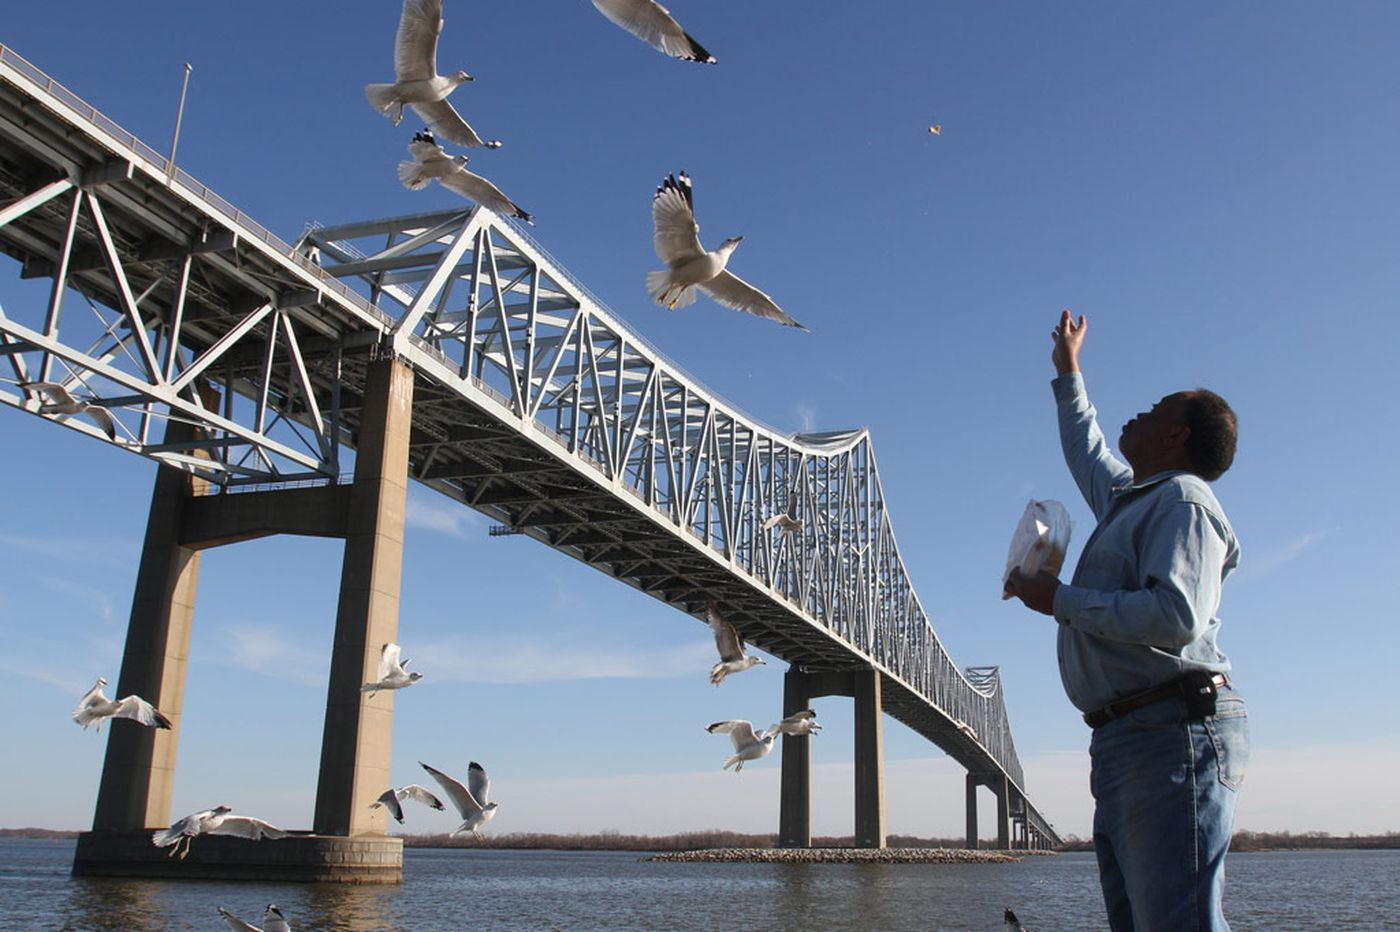 Commodore Barry Bridge will receive $100 million paint job